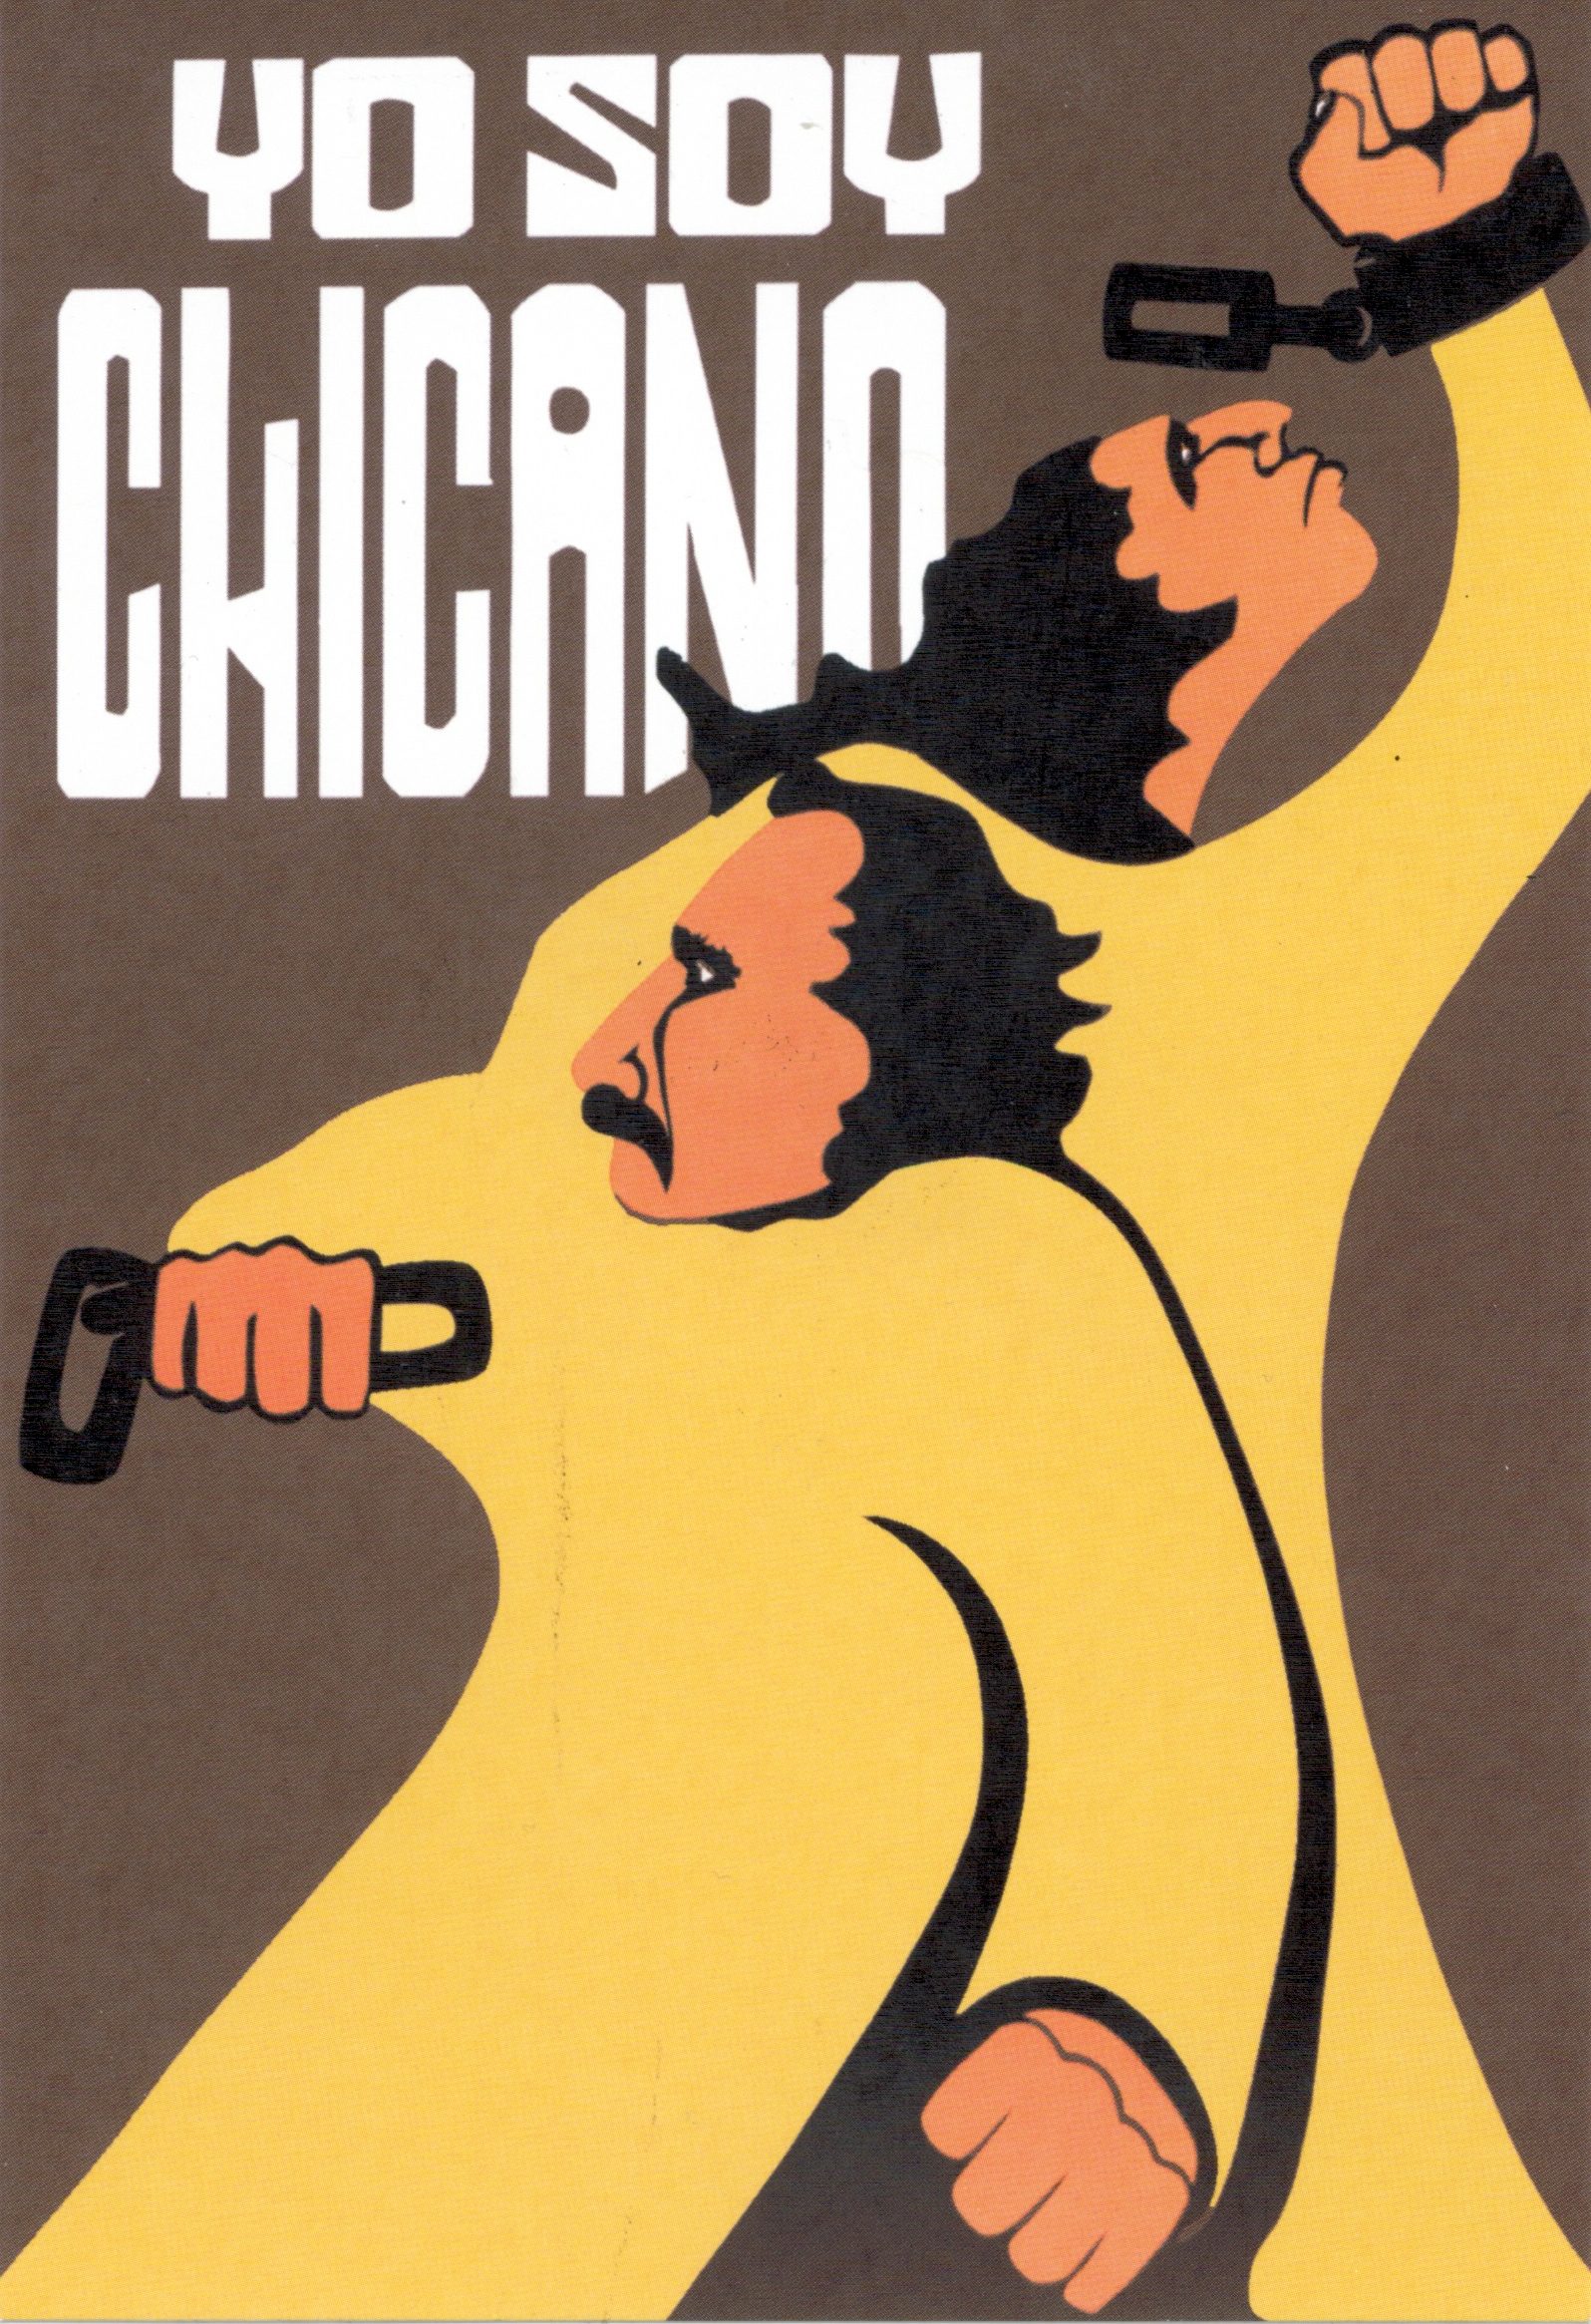 Chicano Arts Movement